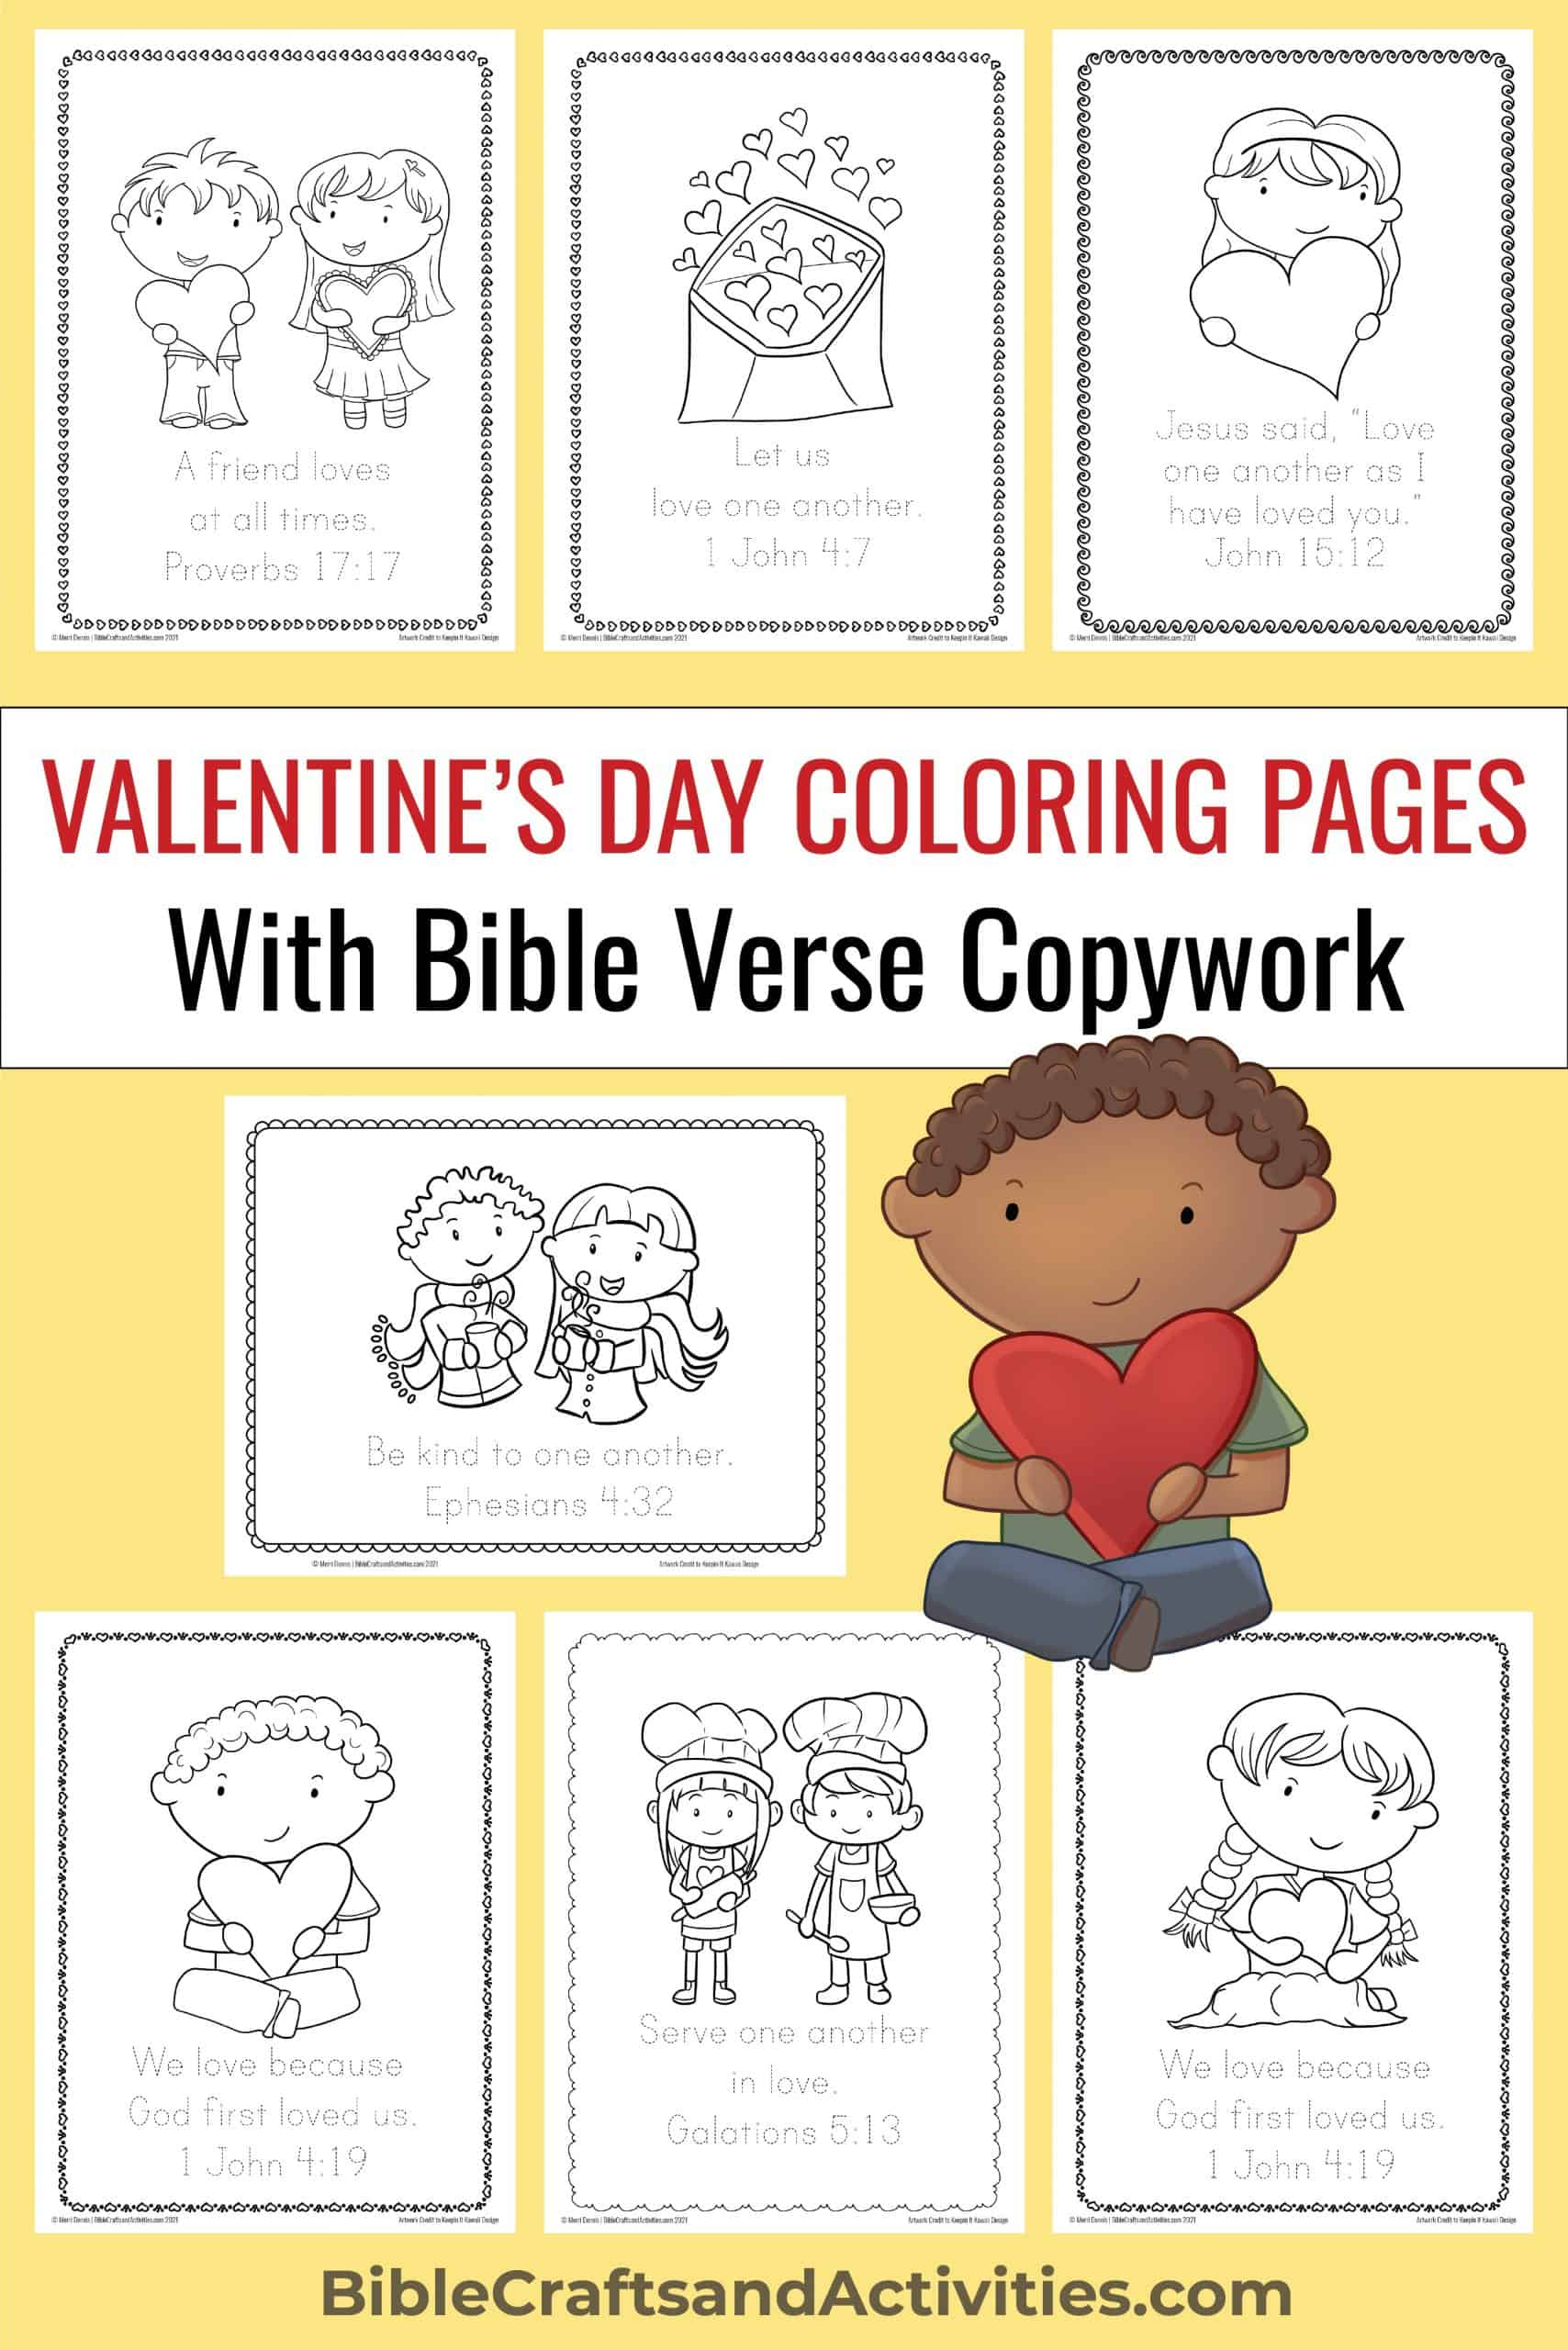 samples of Valentine's Day coloring pages